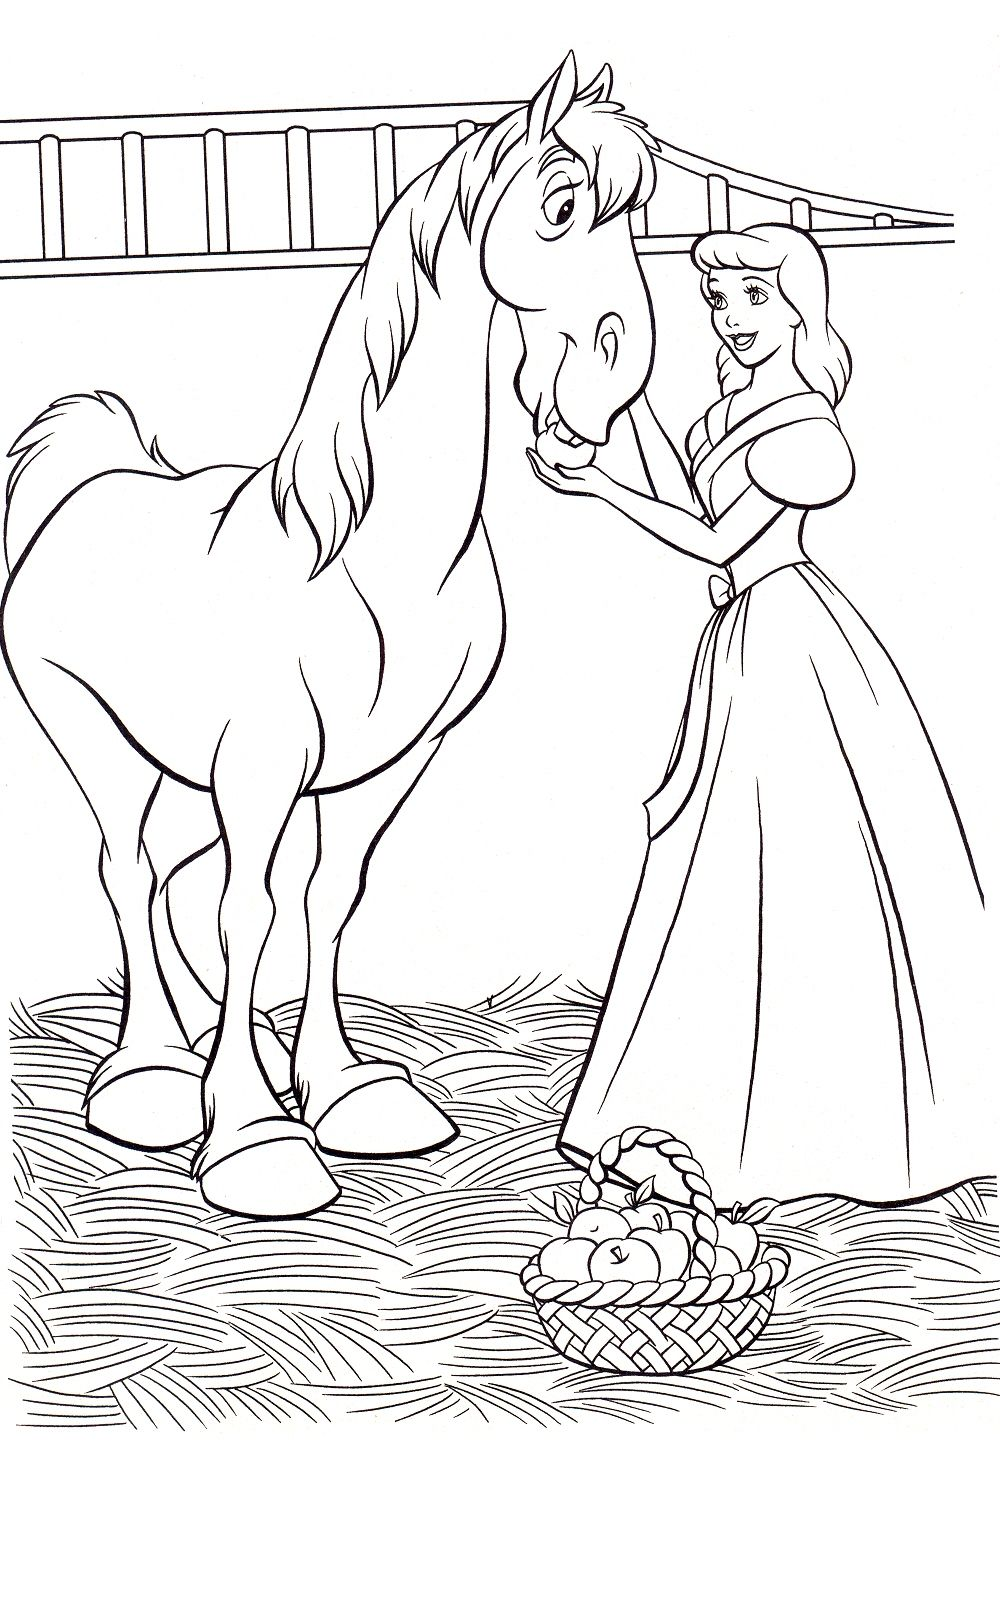 cinderella coloring pages wowcom image results - Cinderella Coloring Pages Kids